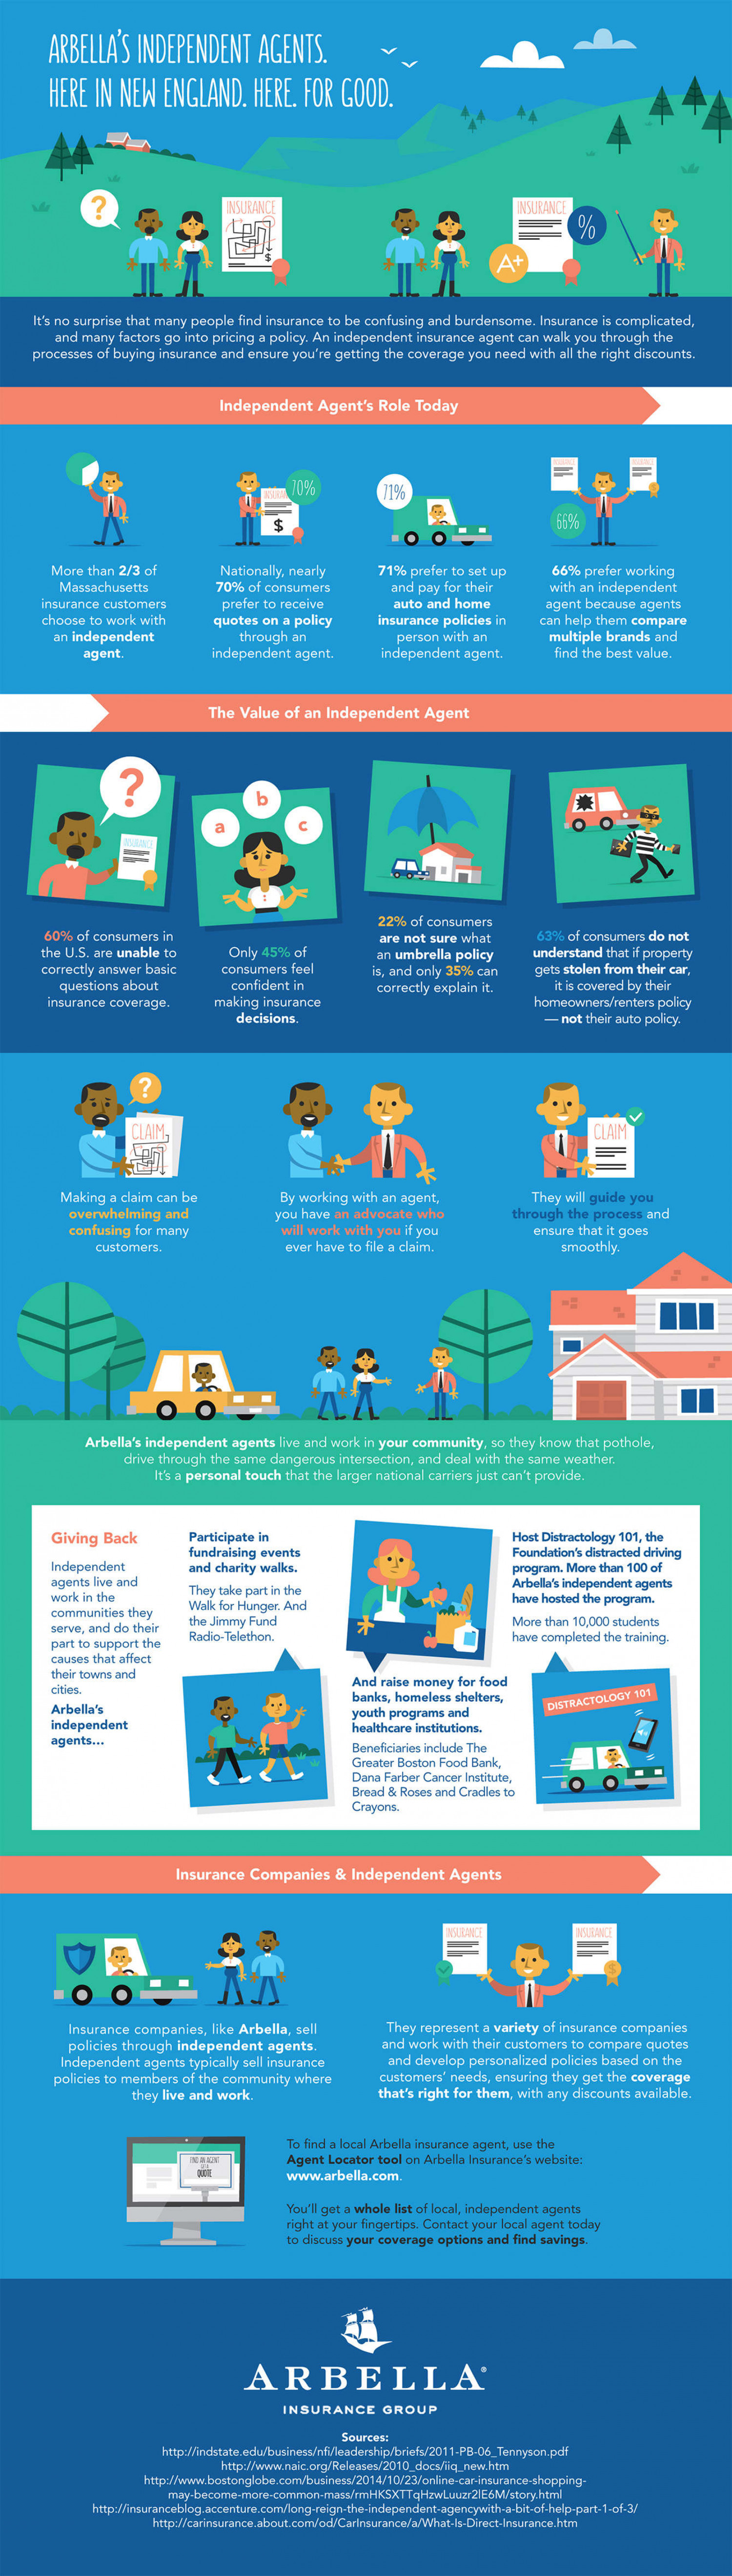 Arbella's Independent Agents. Here. For Good. Infographic